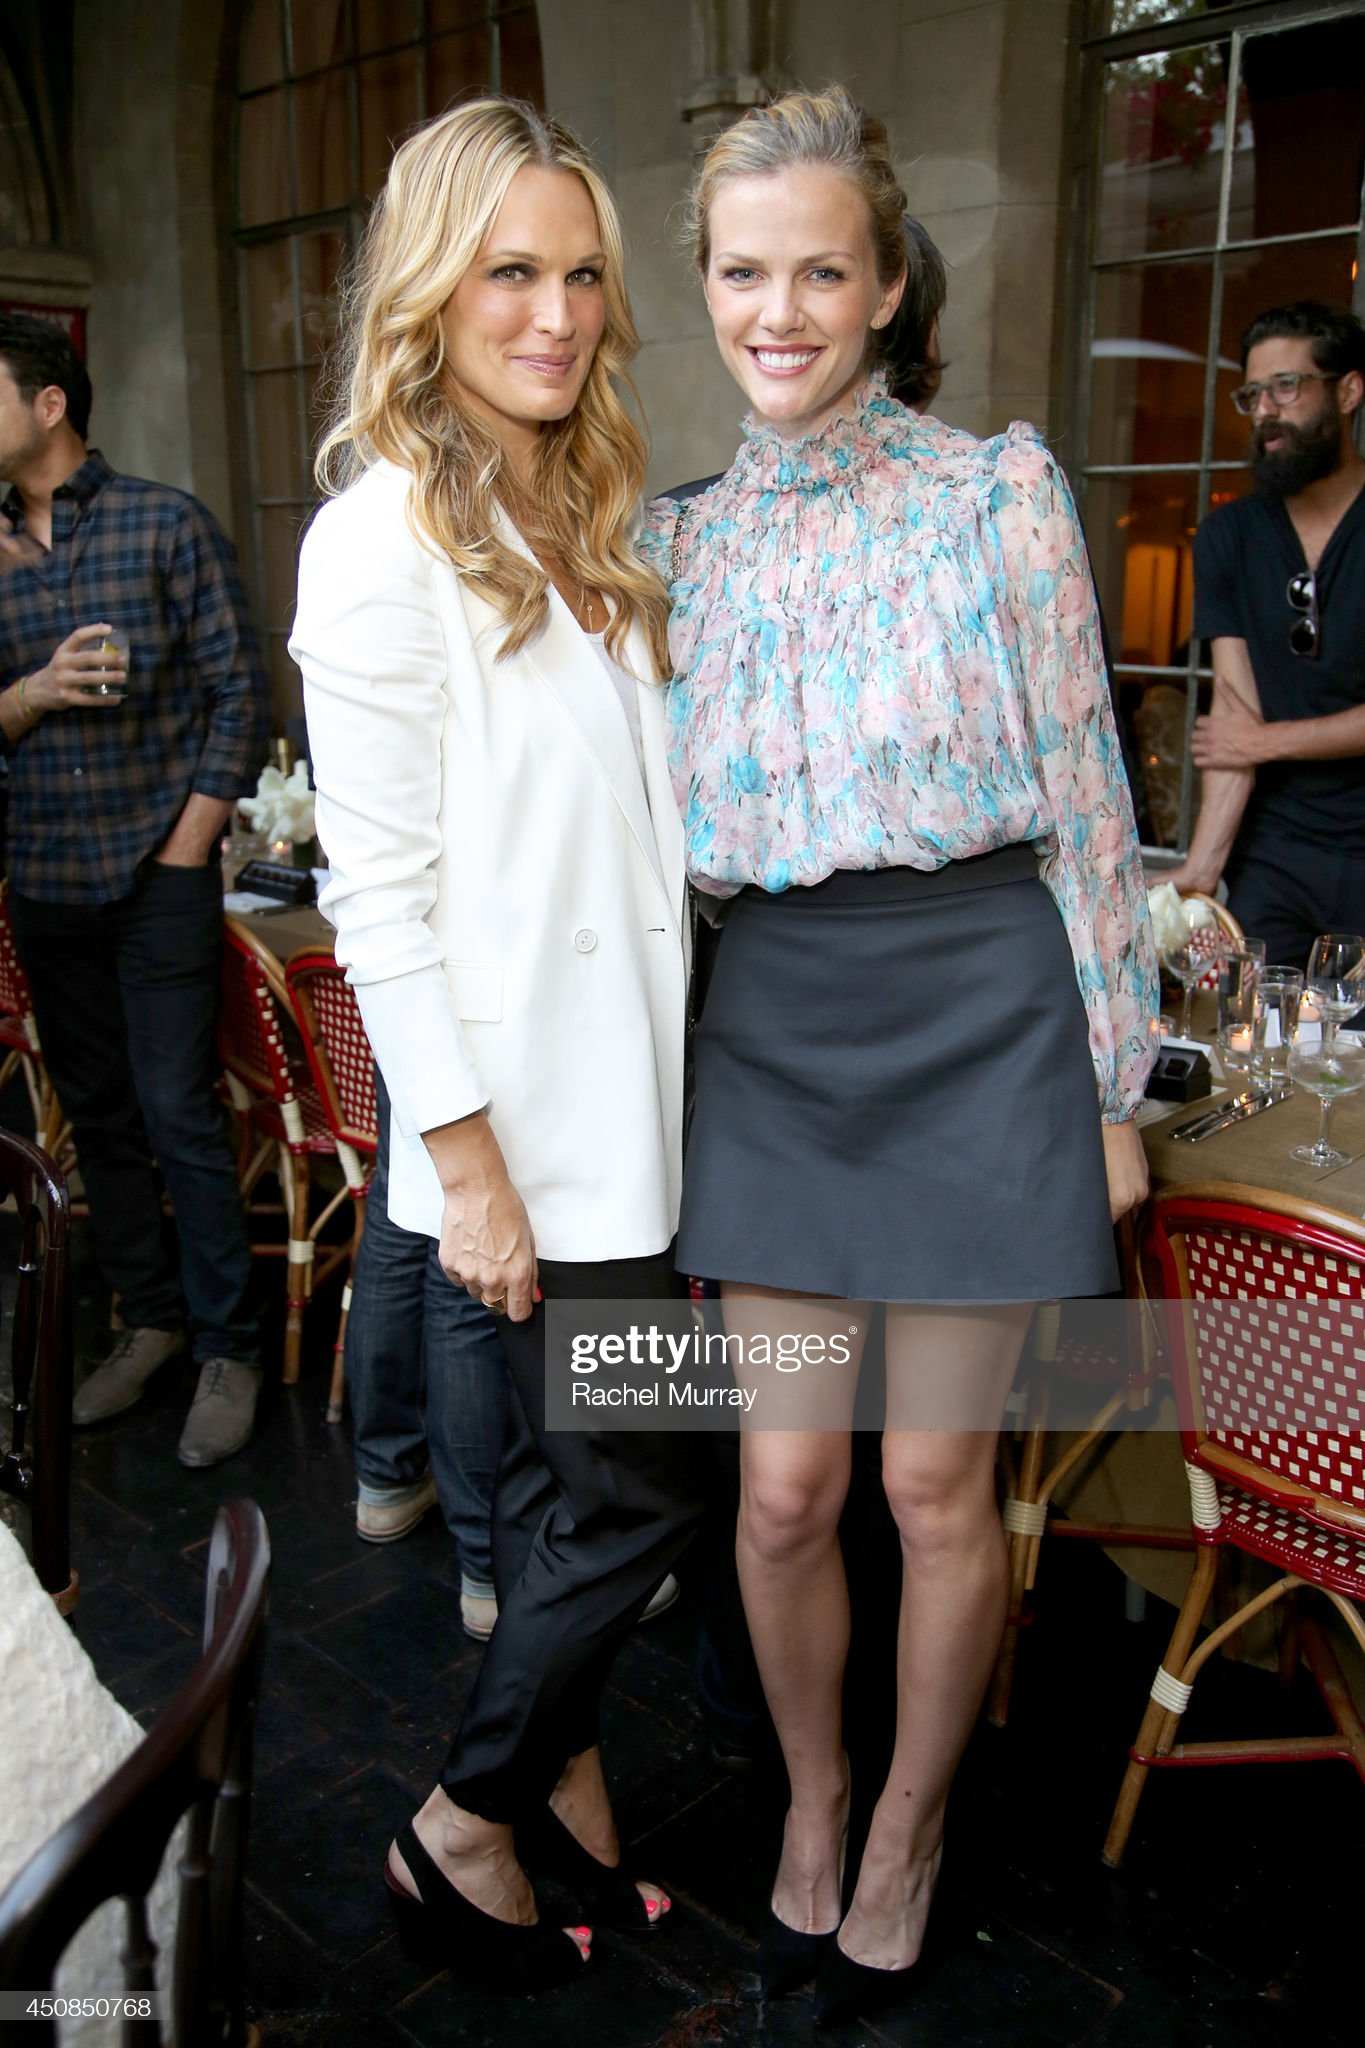 ¿Cuánto mide Molly Sims? - Real height Actressmodels-molly-sims-and-brooklyn-decker-attend-jennifer-meyer-picture-id450850768?s=2048x2048